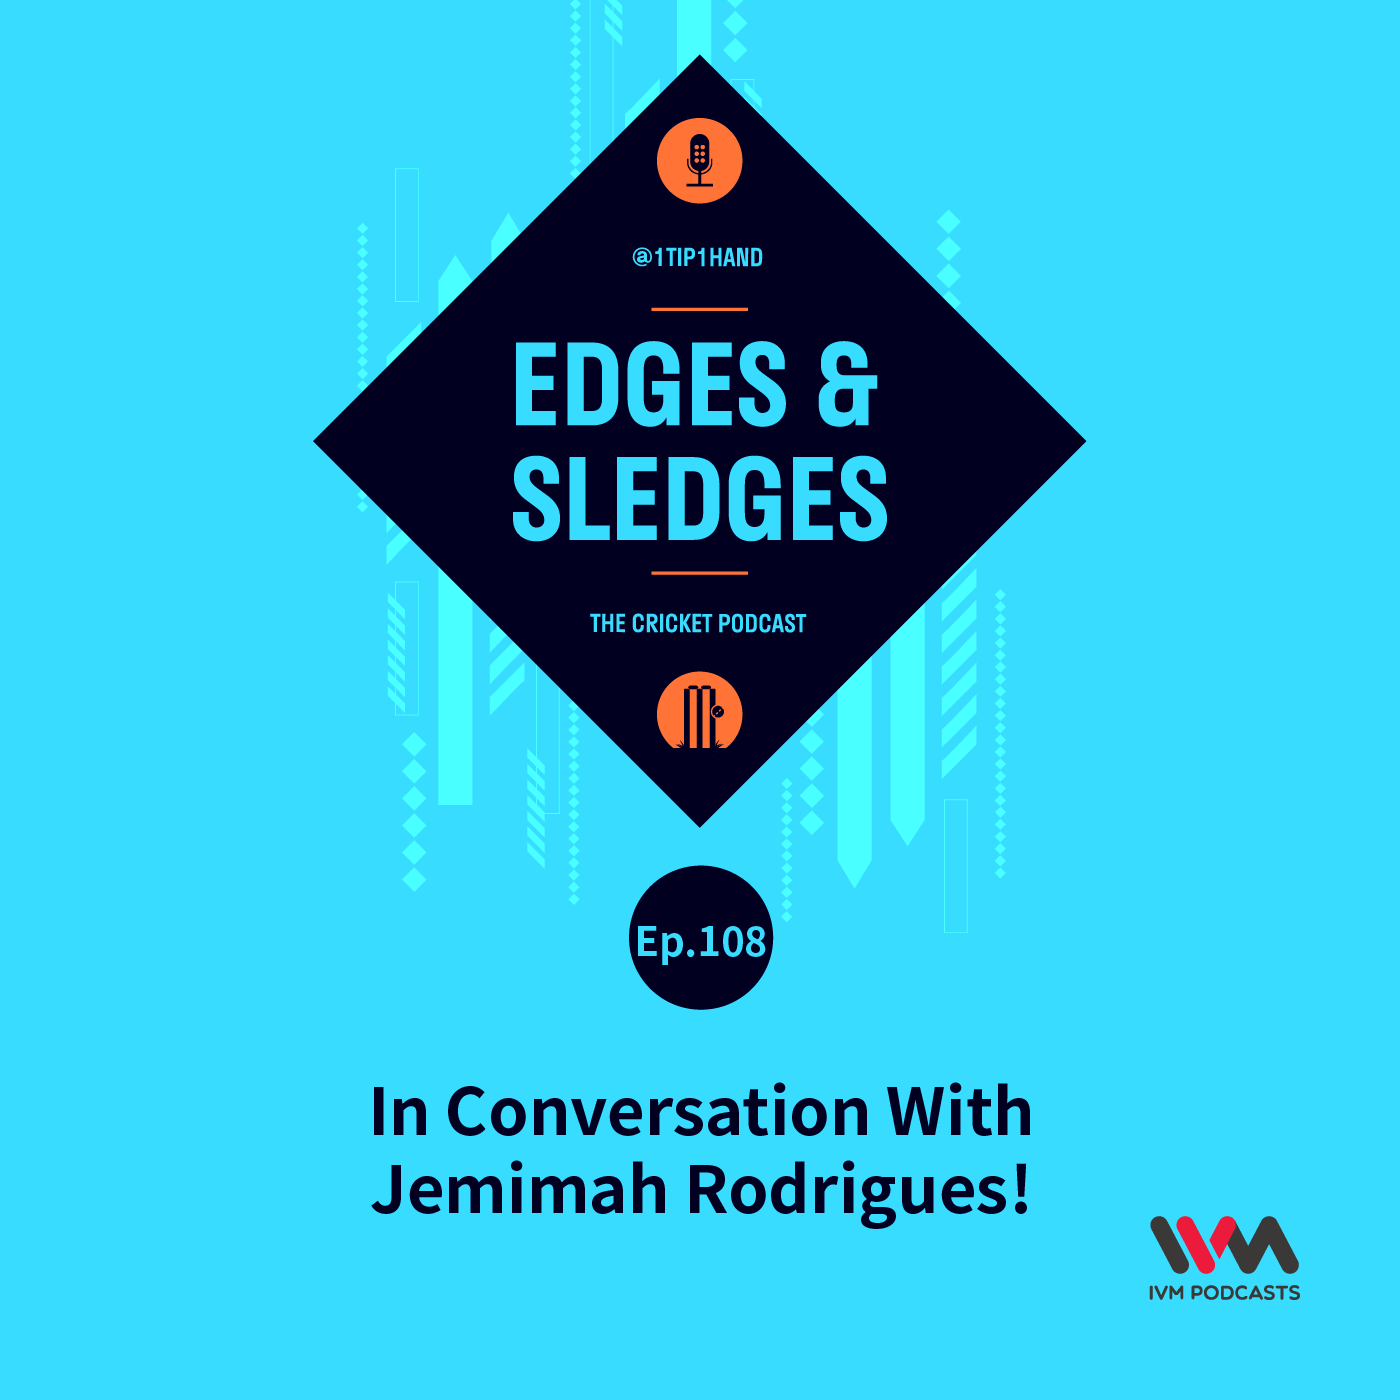 Ep. 108: In Conversation With Jemimah Rodrigues!